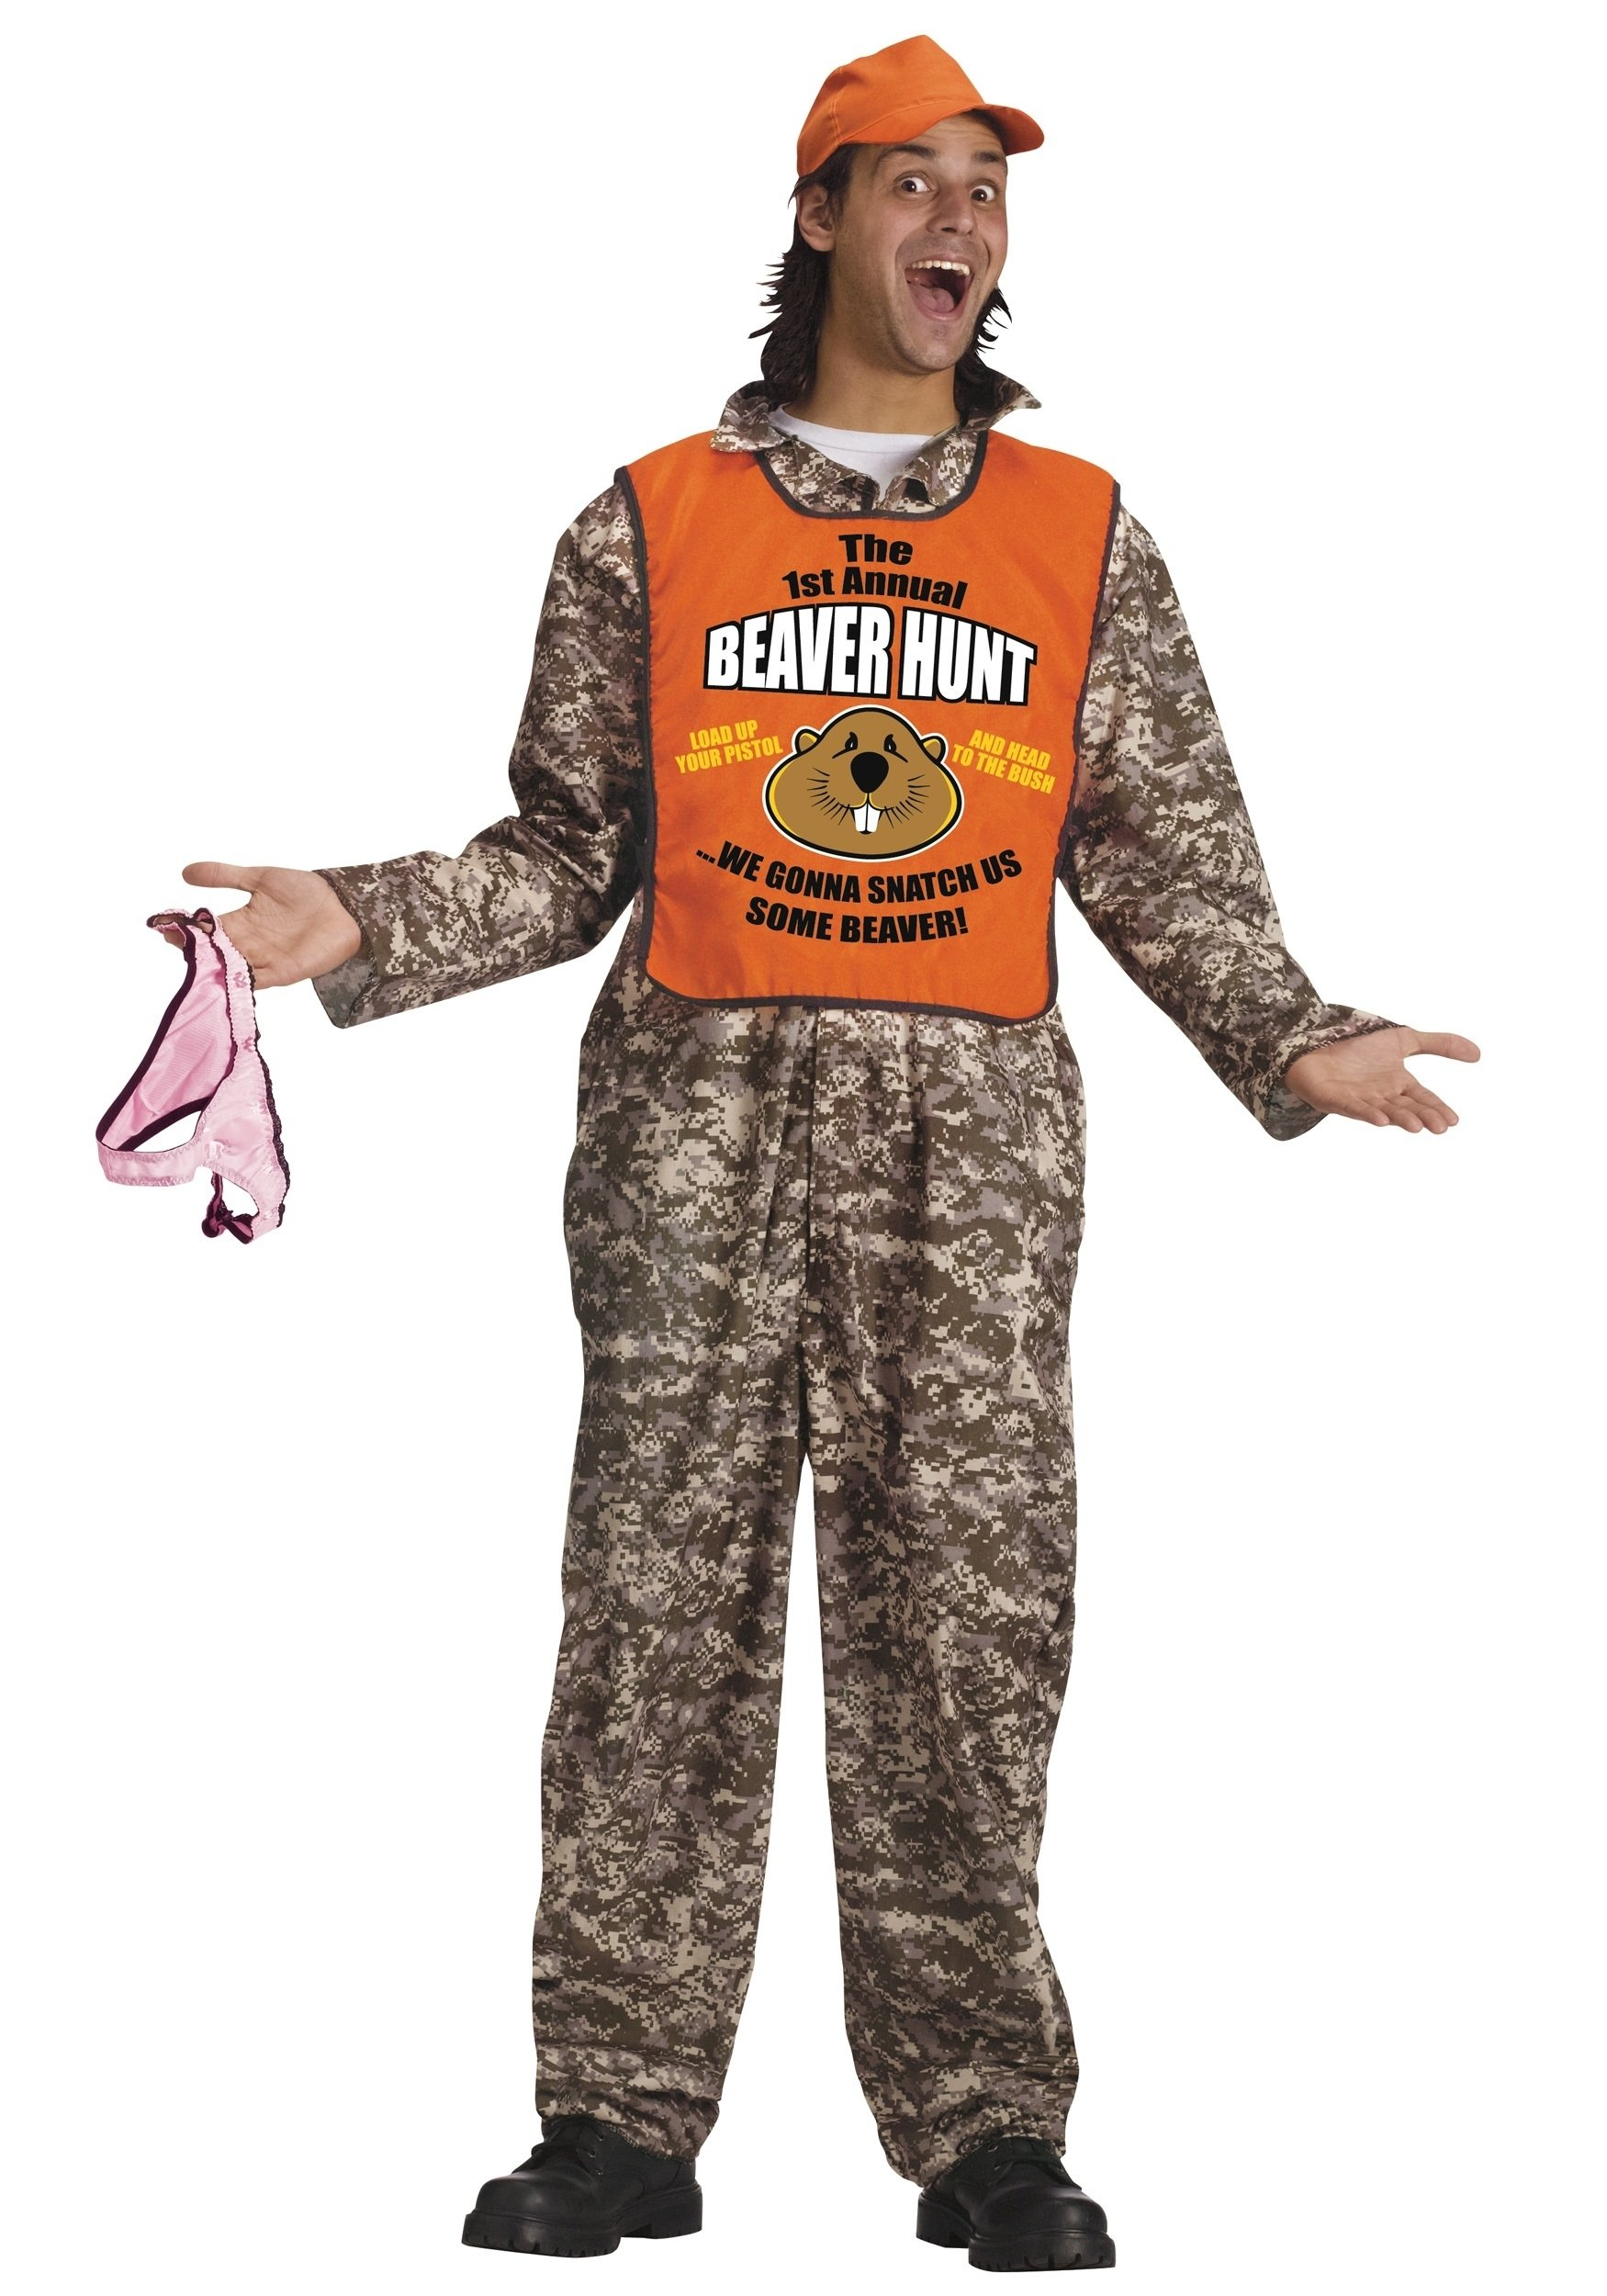 10 Ideal Halloween Costumes Ideas For Guys adult beaver hunter costume halloween costumes 2 2021